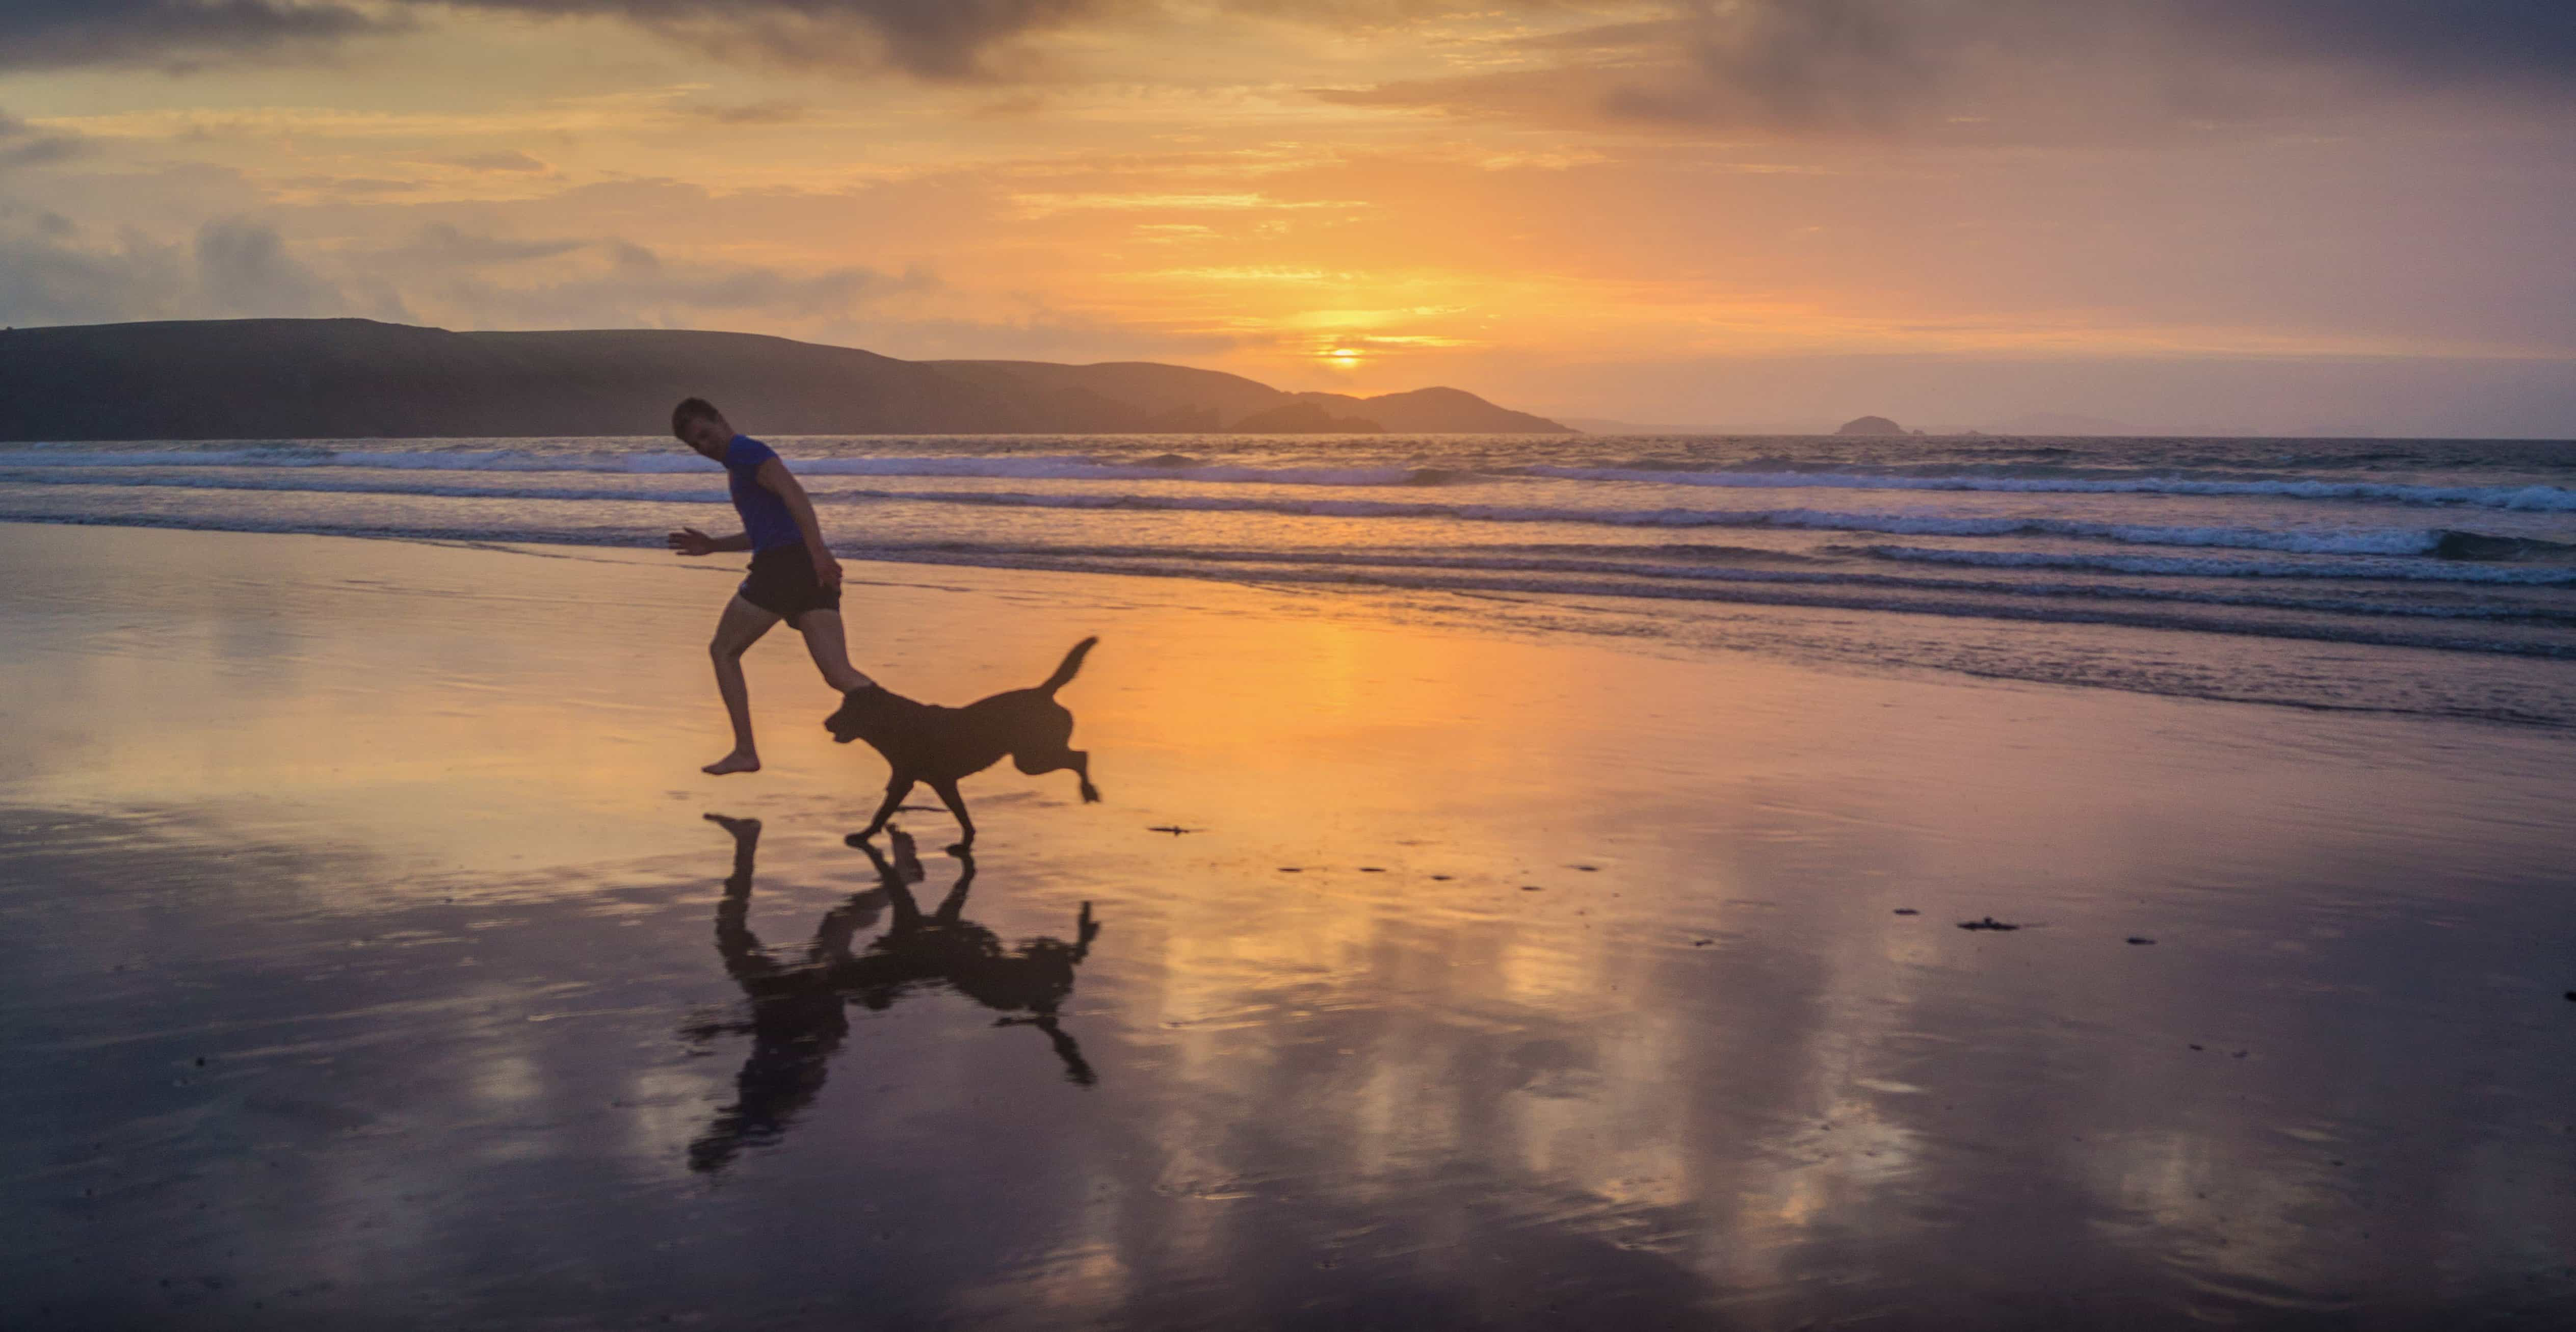 Black Wood Wallpaper Free Picture Water Sunlight Man Silhouette Dog